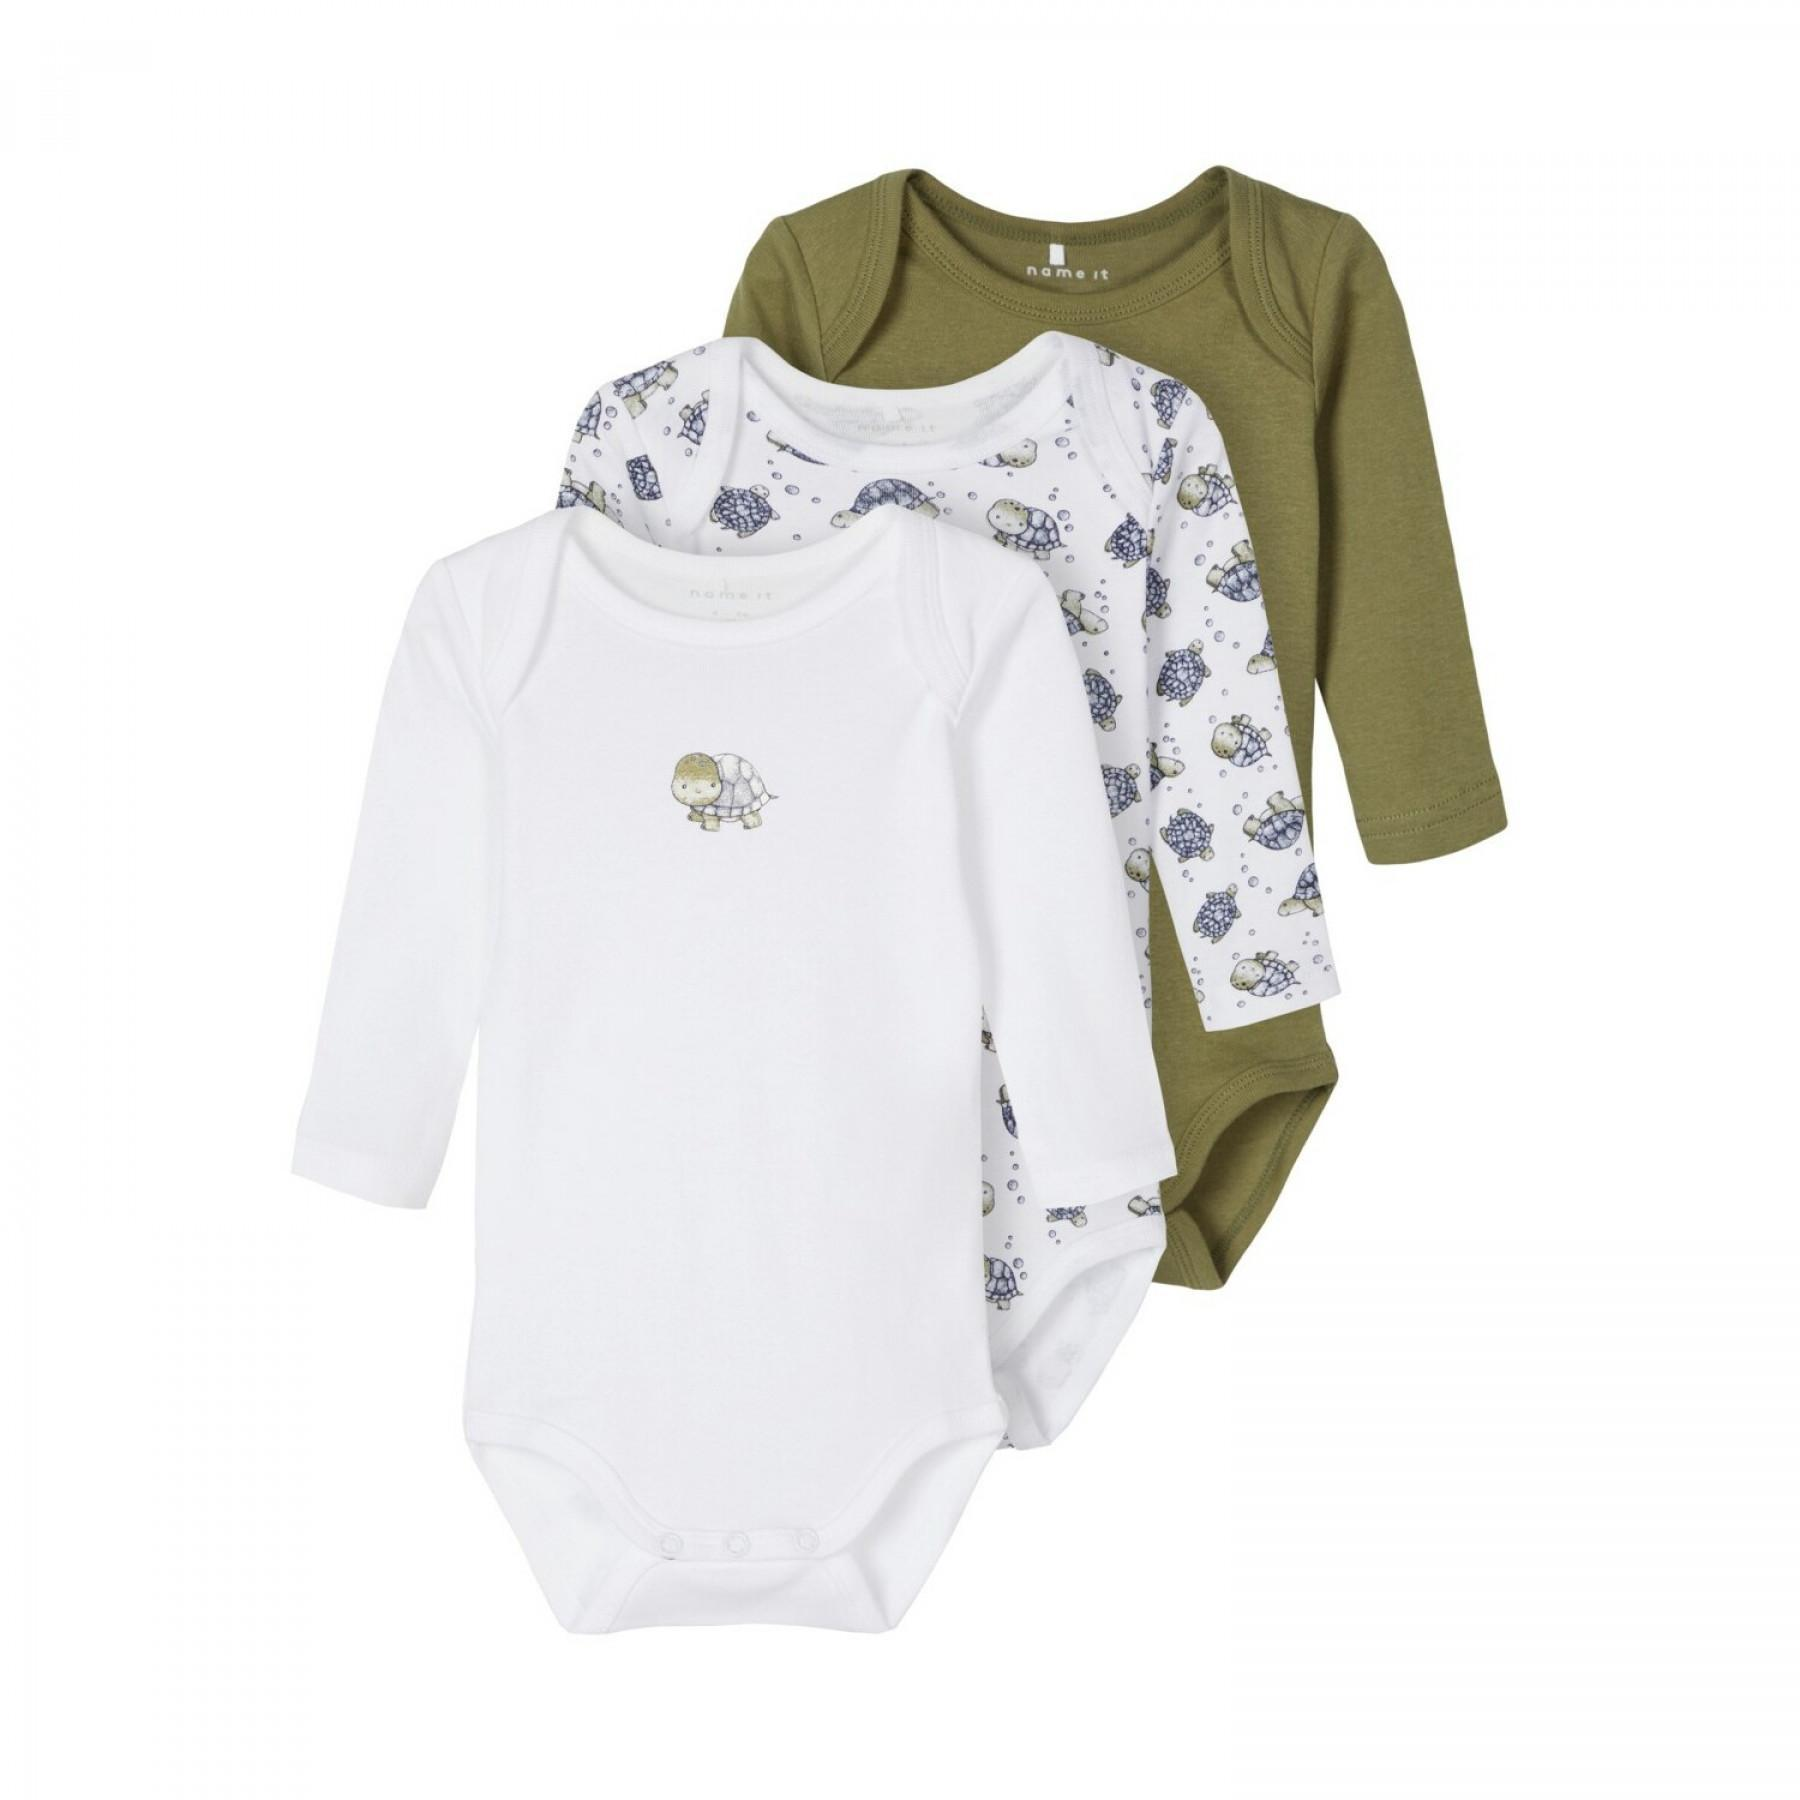 Set of 3 long sleeve baby bodysuits Name it Tortue